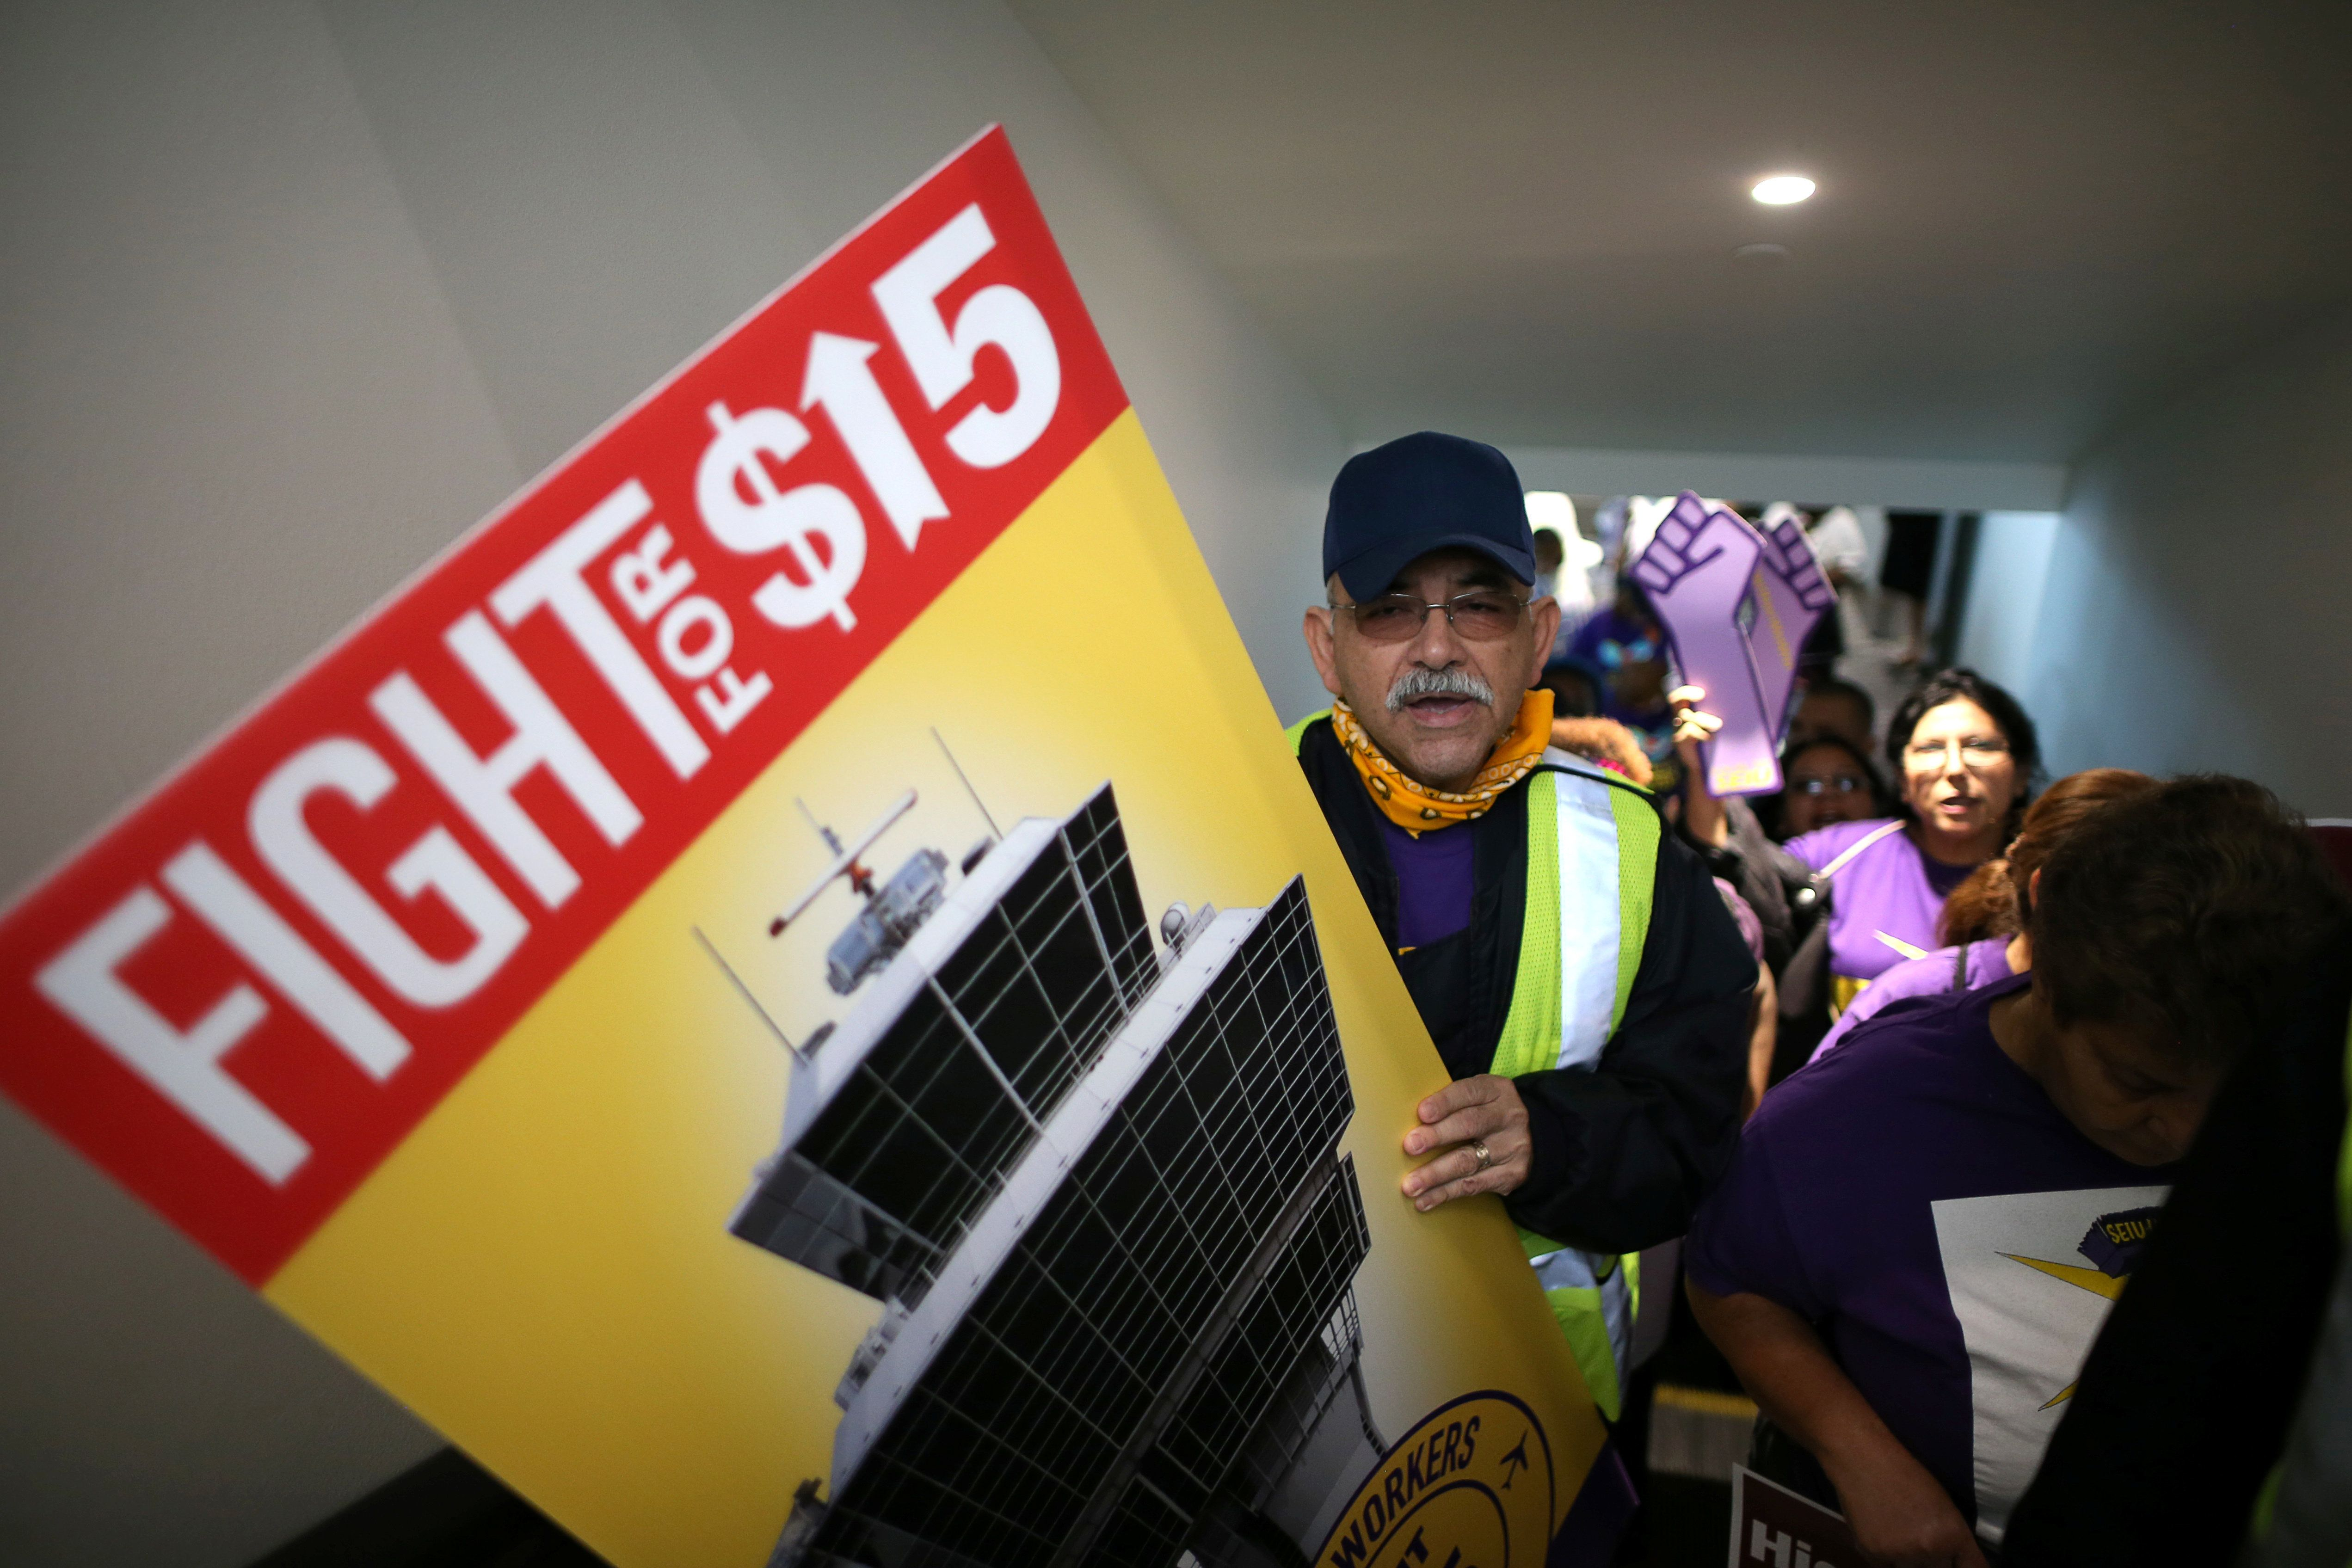 "People ride a terminal escalator in a ""Fight for $15"" wage protest at LAX airport in Los Angeles, California, U.S. November 29, 2016. REUTERS/Lucy Nicholson"